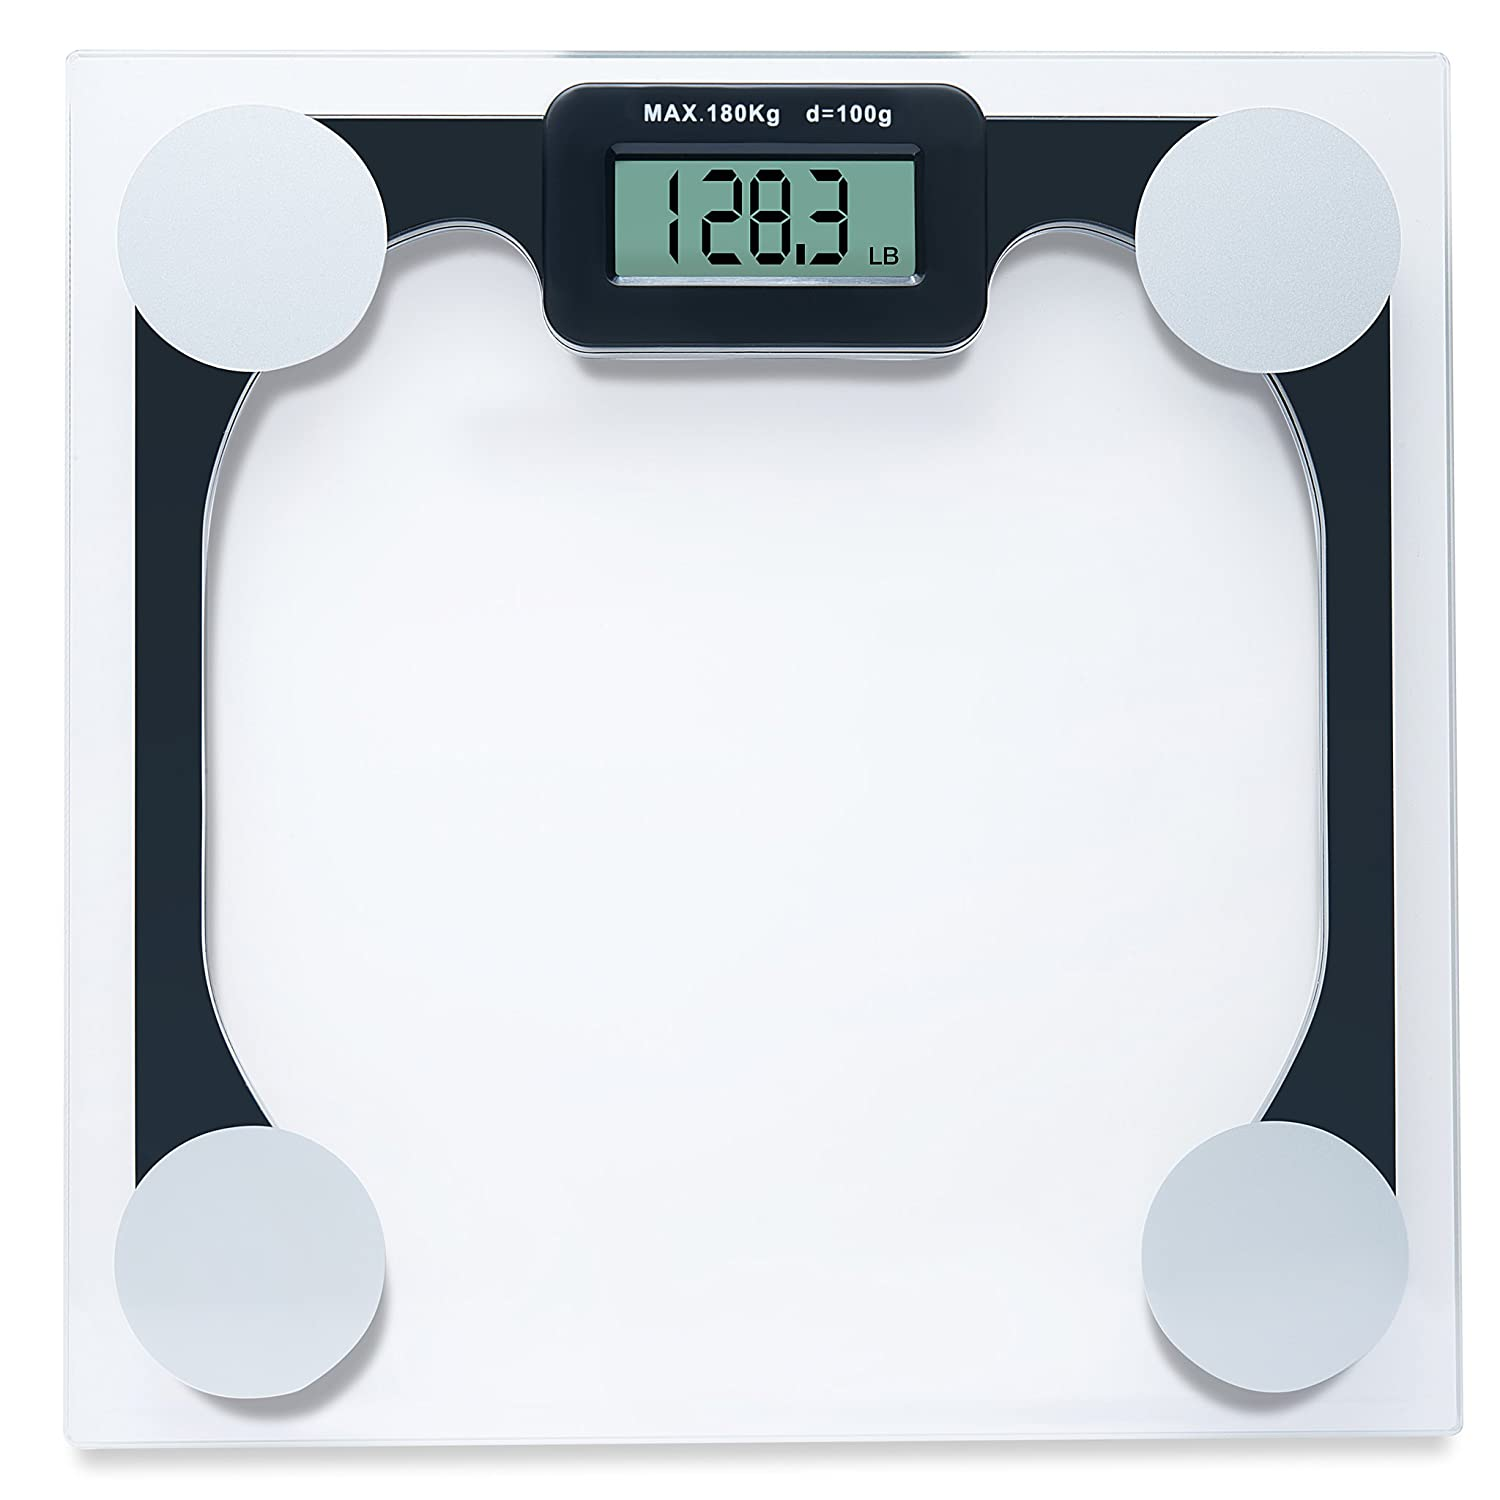 Amazon.com: weighing scale - Modern digital scale High quality ...